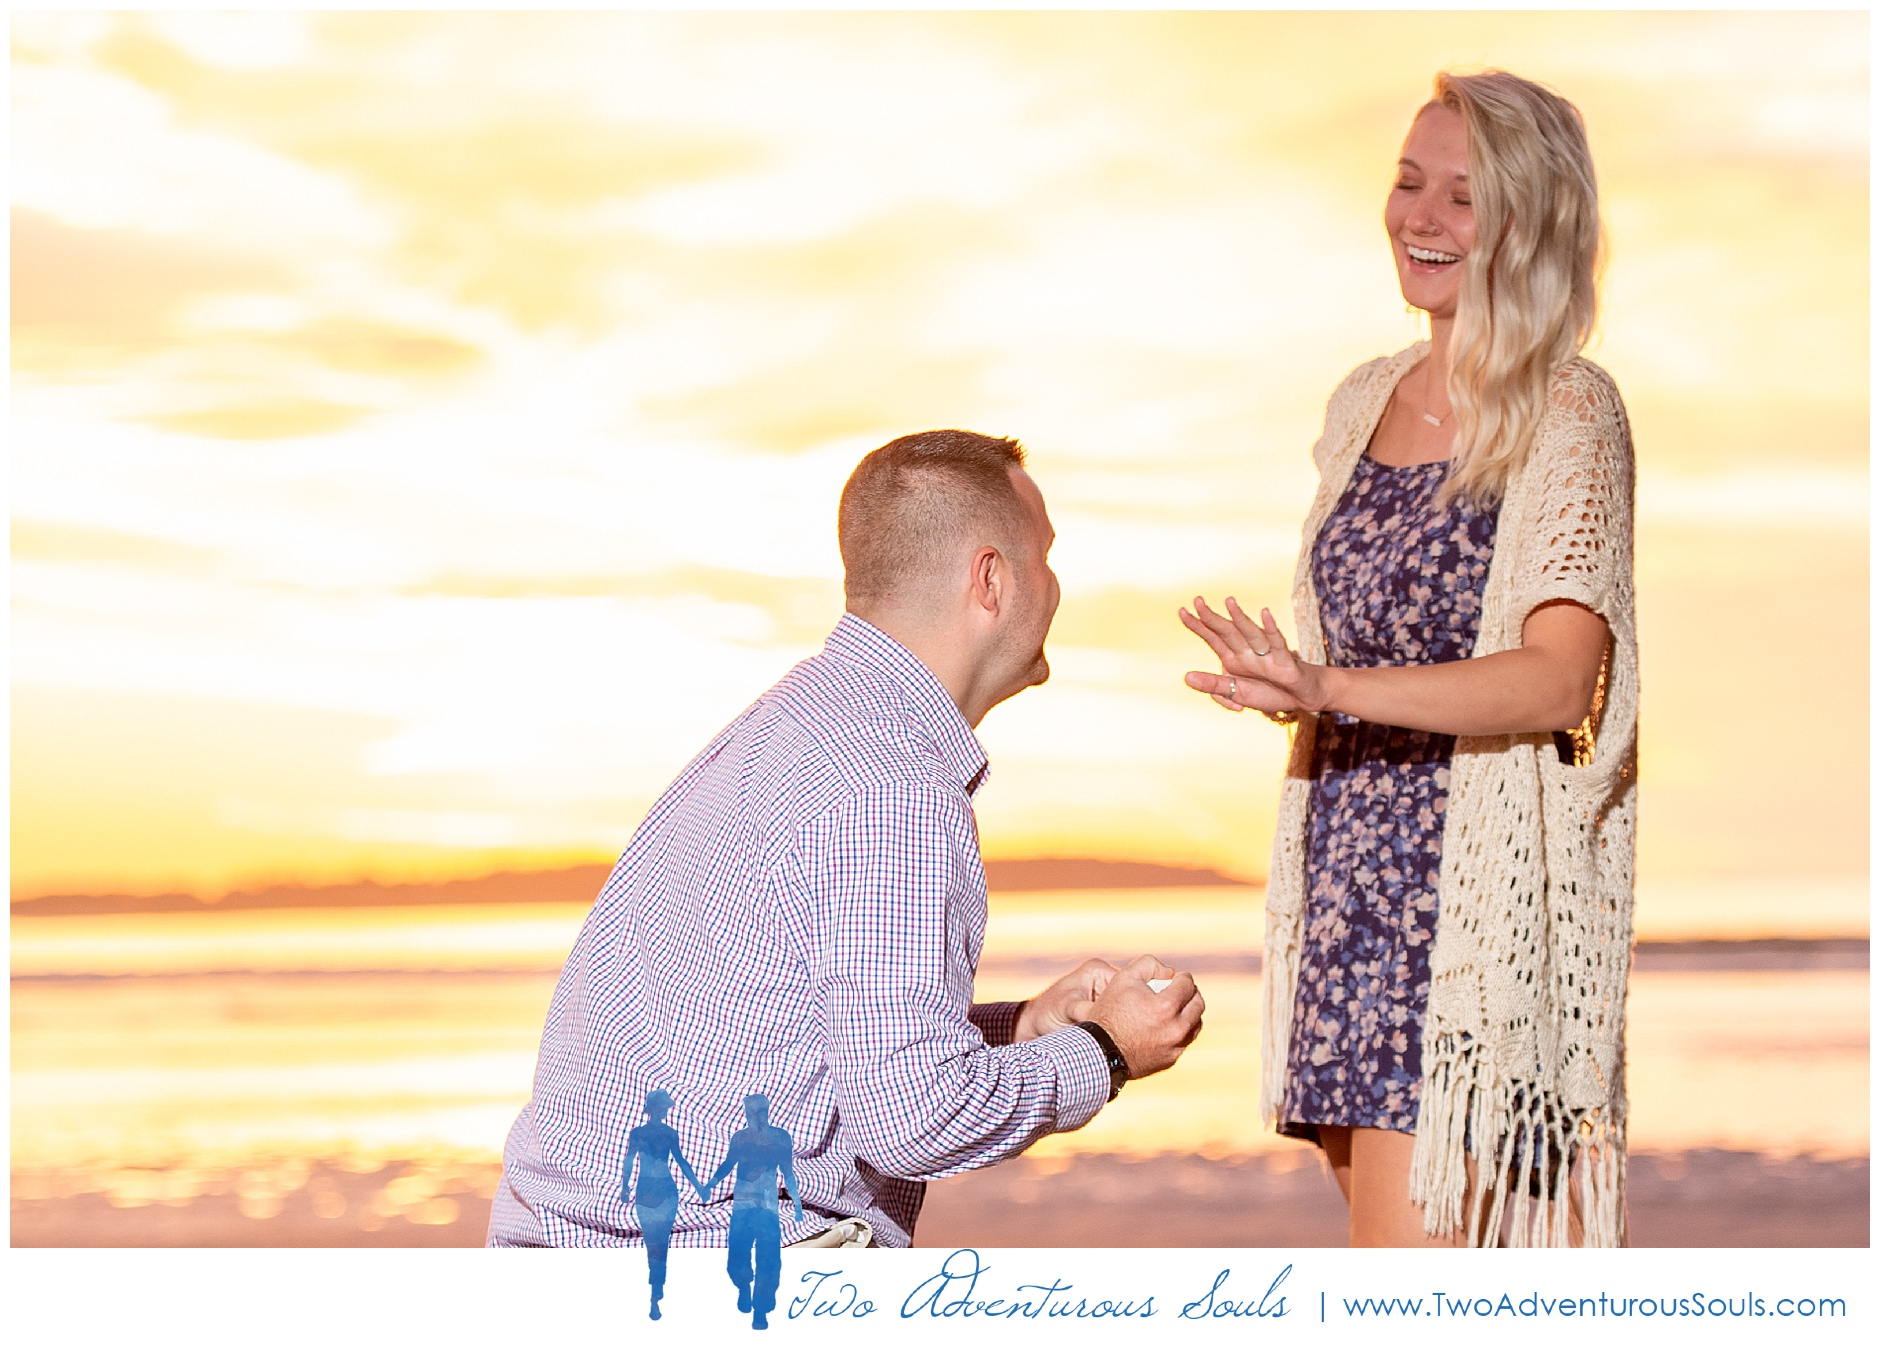 Surprise Proposal, Old Orchard Beach Photographer, Proposal Photographer in maine, Two Adventurous Souls_0002.jpg